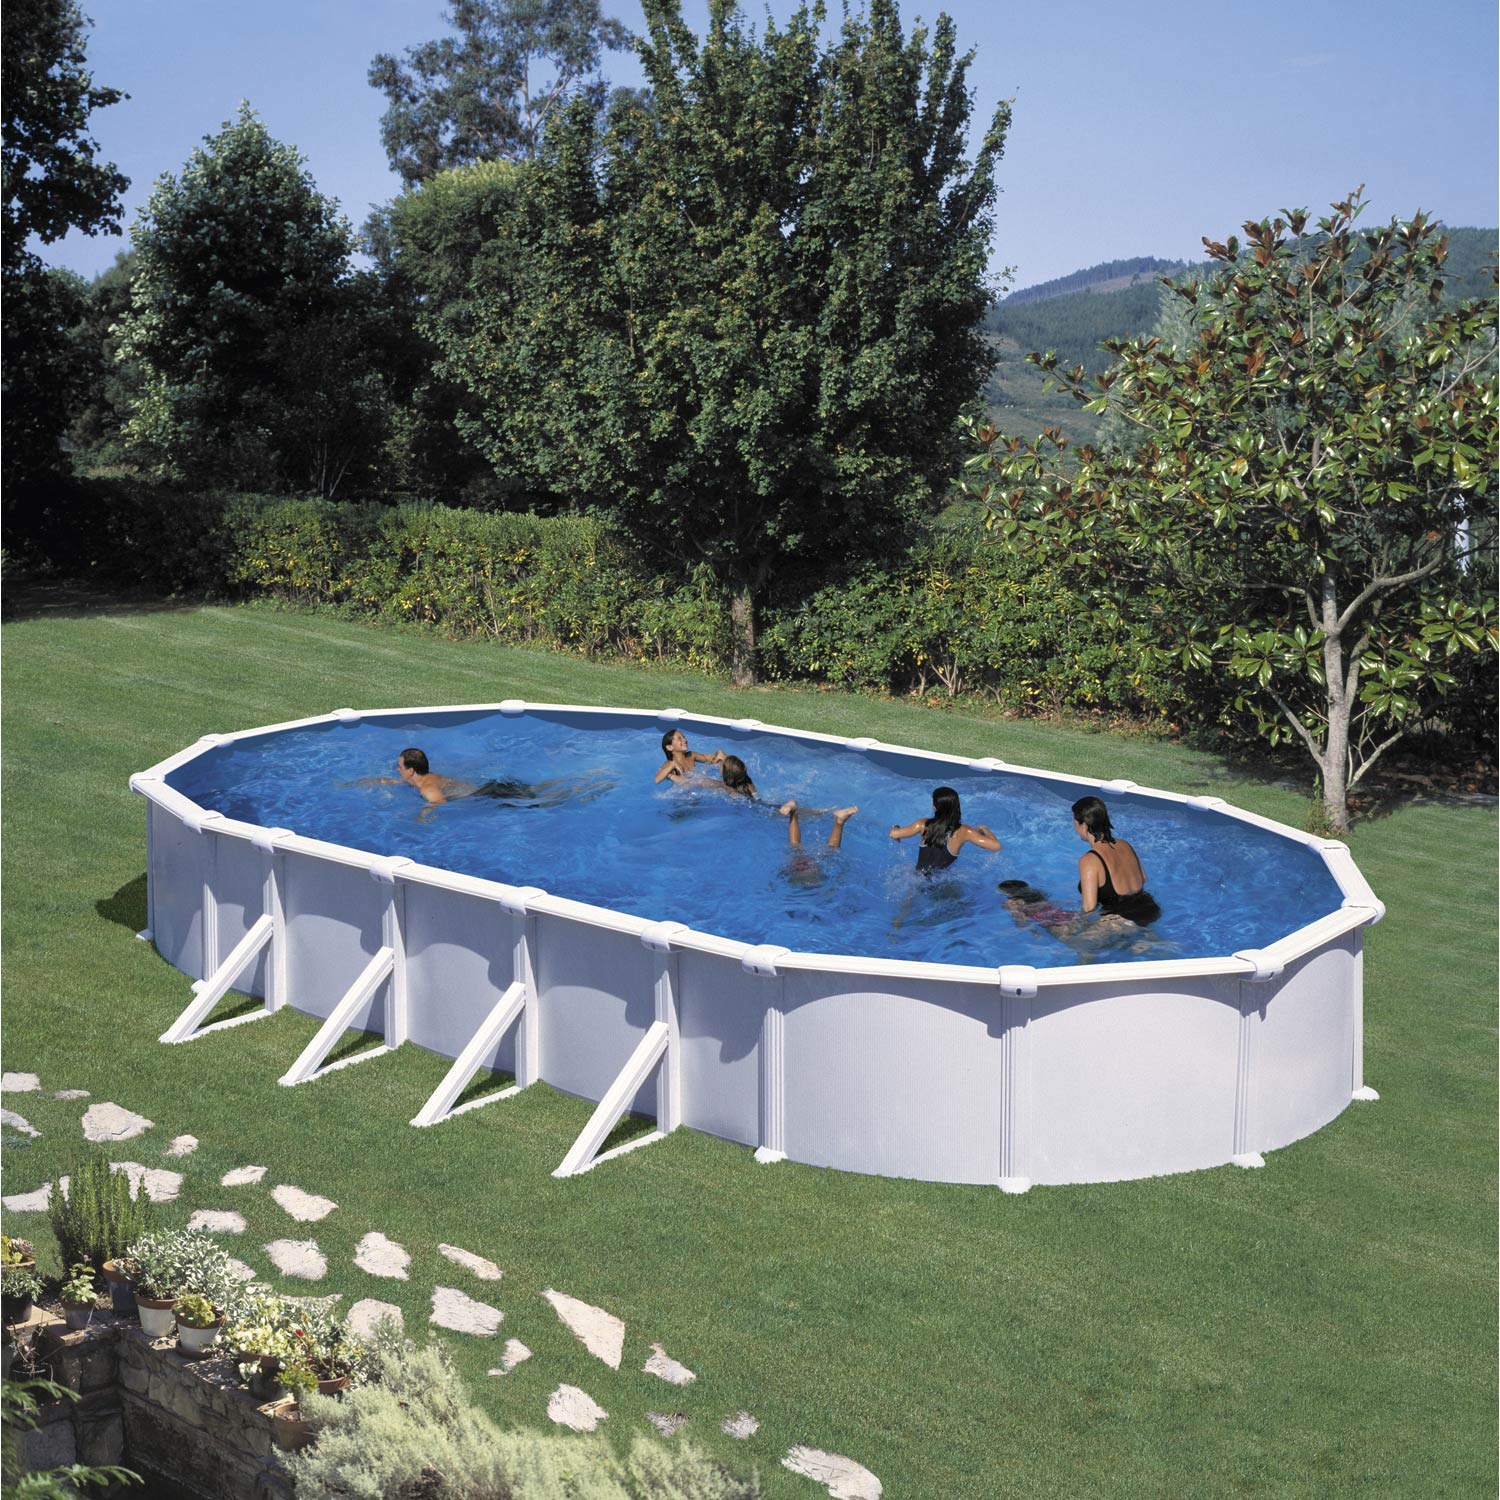 Margelle piscine leroy merlin margelle piscine leroy for Piscine bois leroy merlin